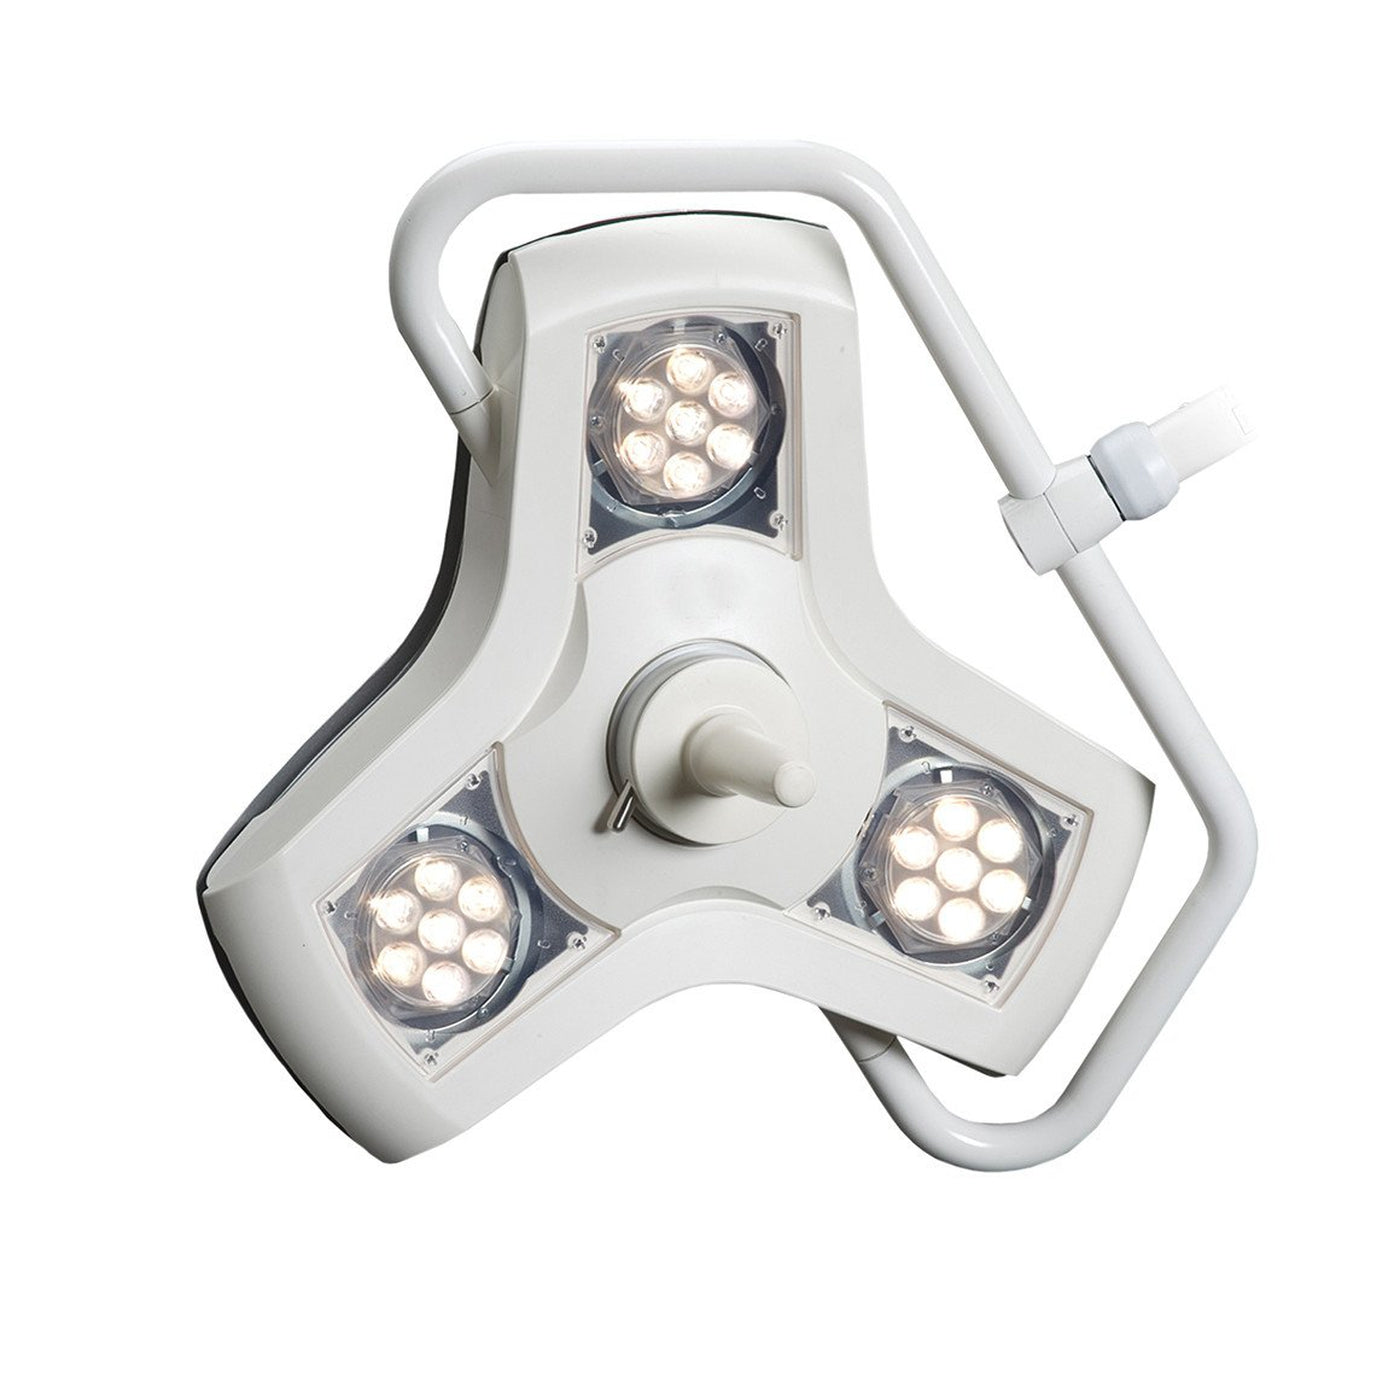 LED Surgical Light - SLALED-Laboratory Accessory-Mortech Manufacturing Company Inc. Quality Stainless Steel Autopsy, Morgue, Funeral Home, Necropsy, Veterinary / Anatomy, Dissection Equipment and Accessories